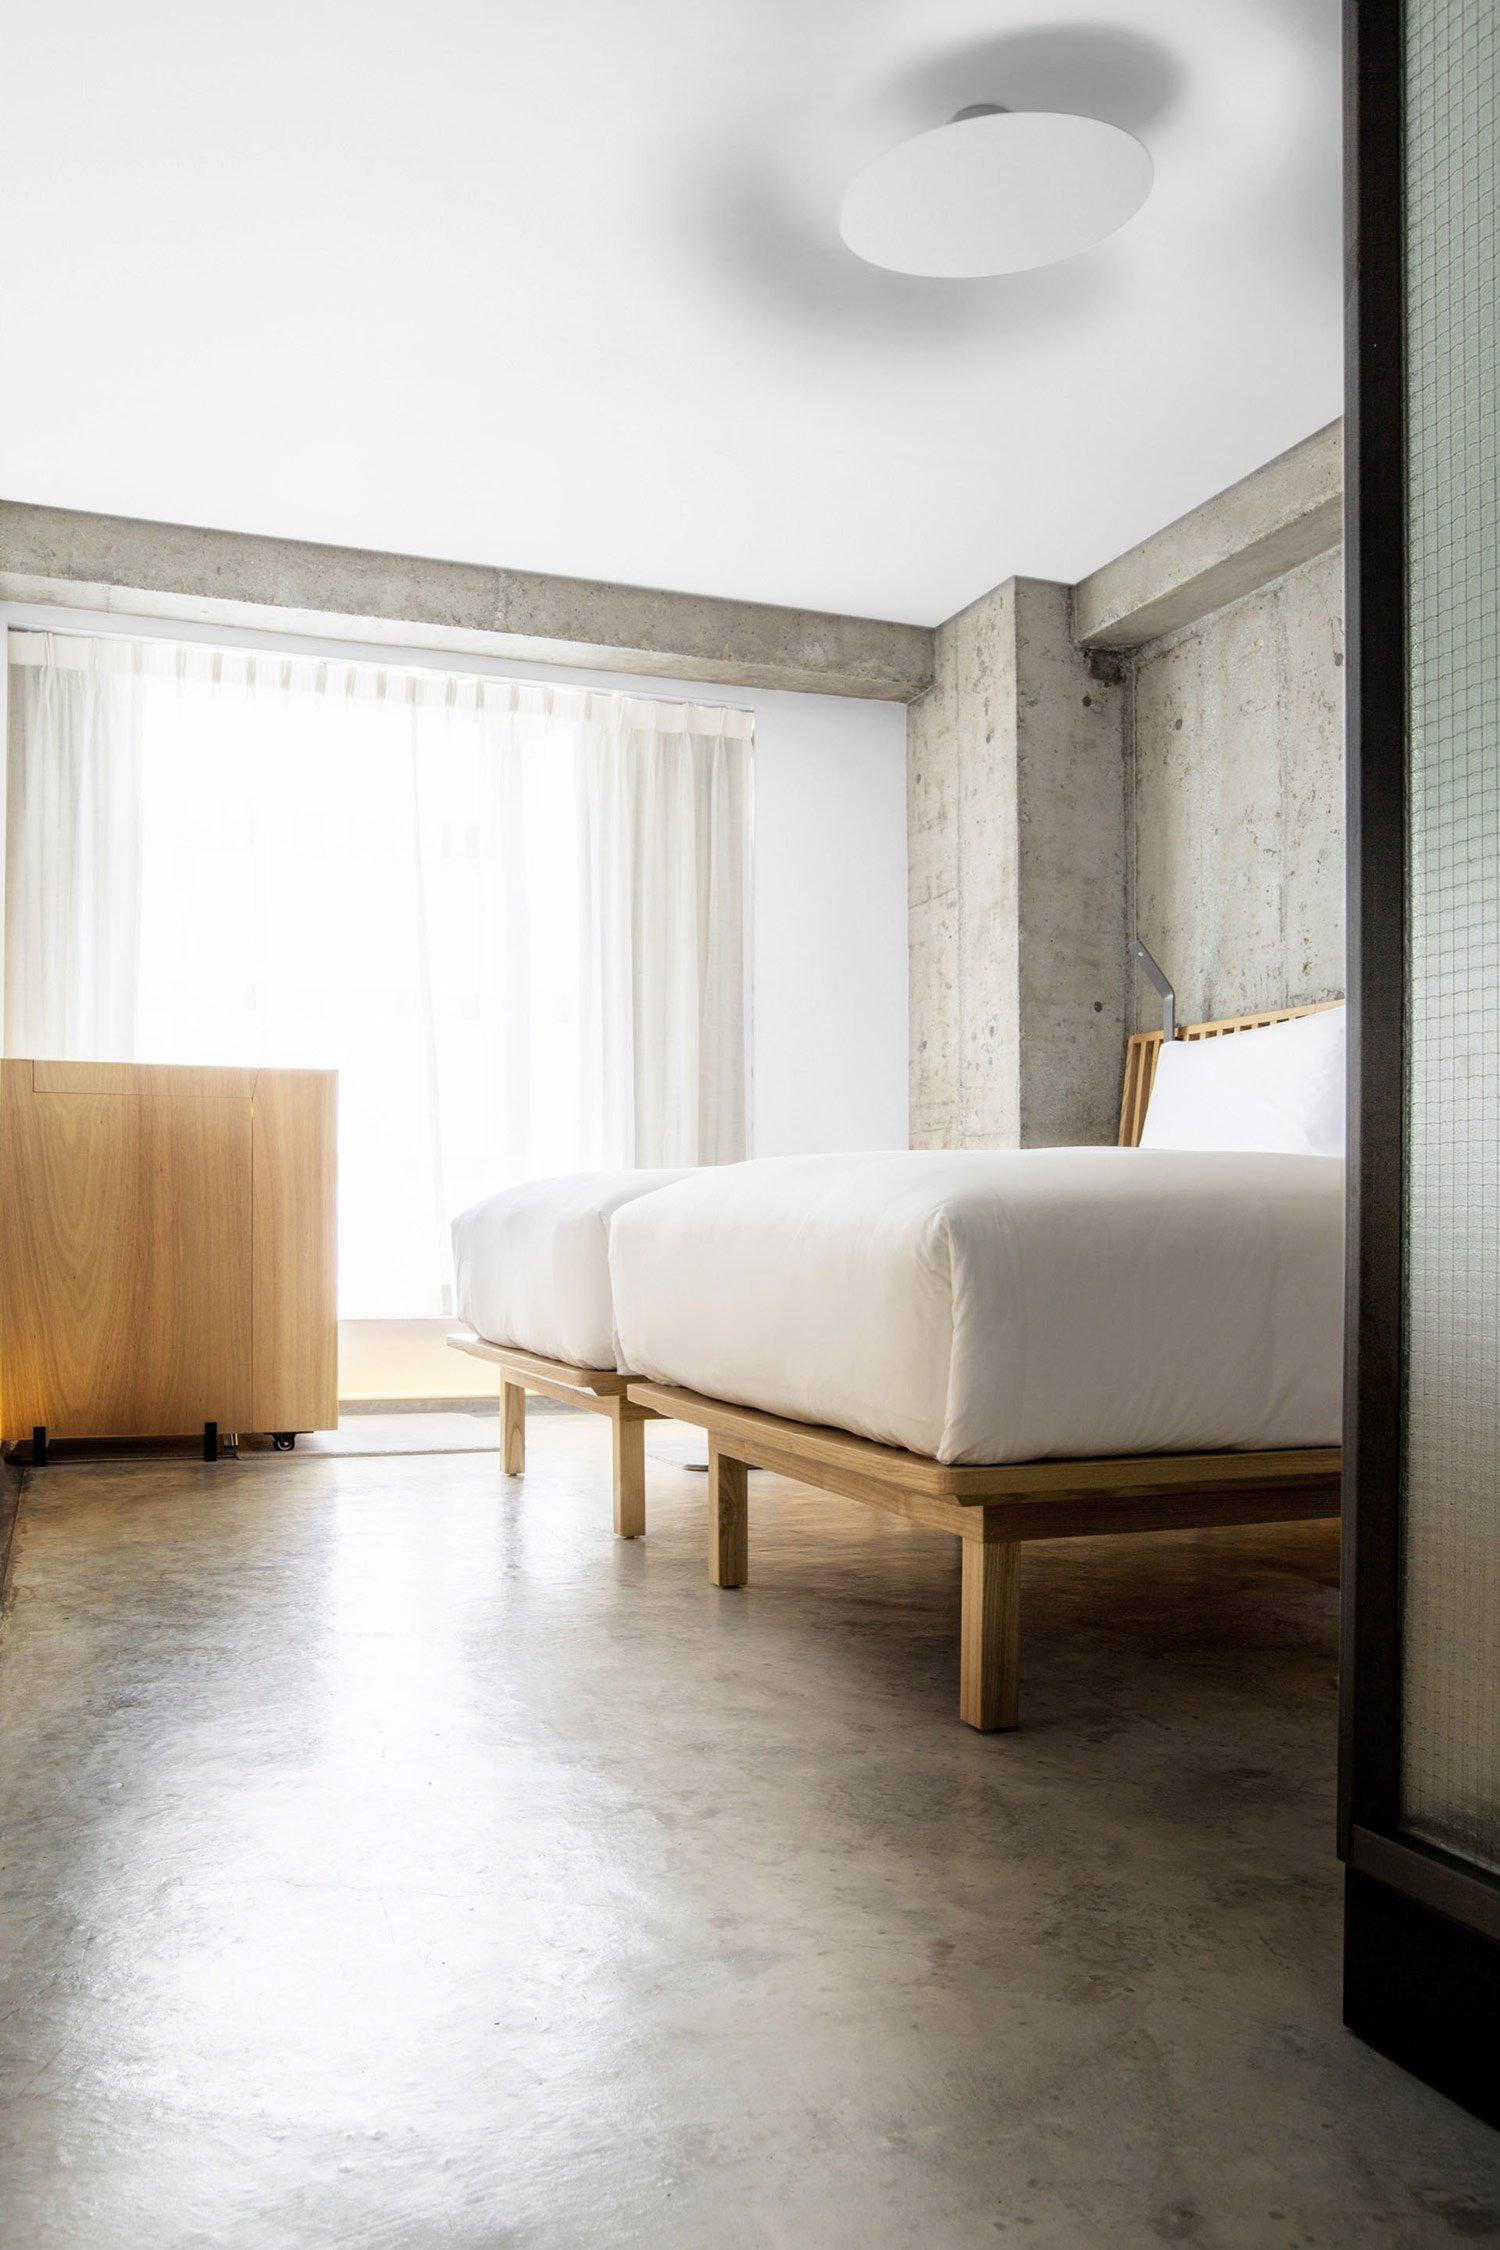 tuve-boutique-hotel-by-design-systems-12